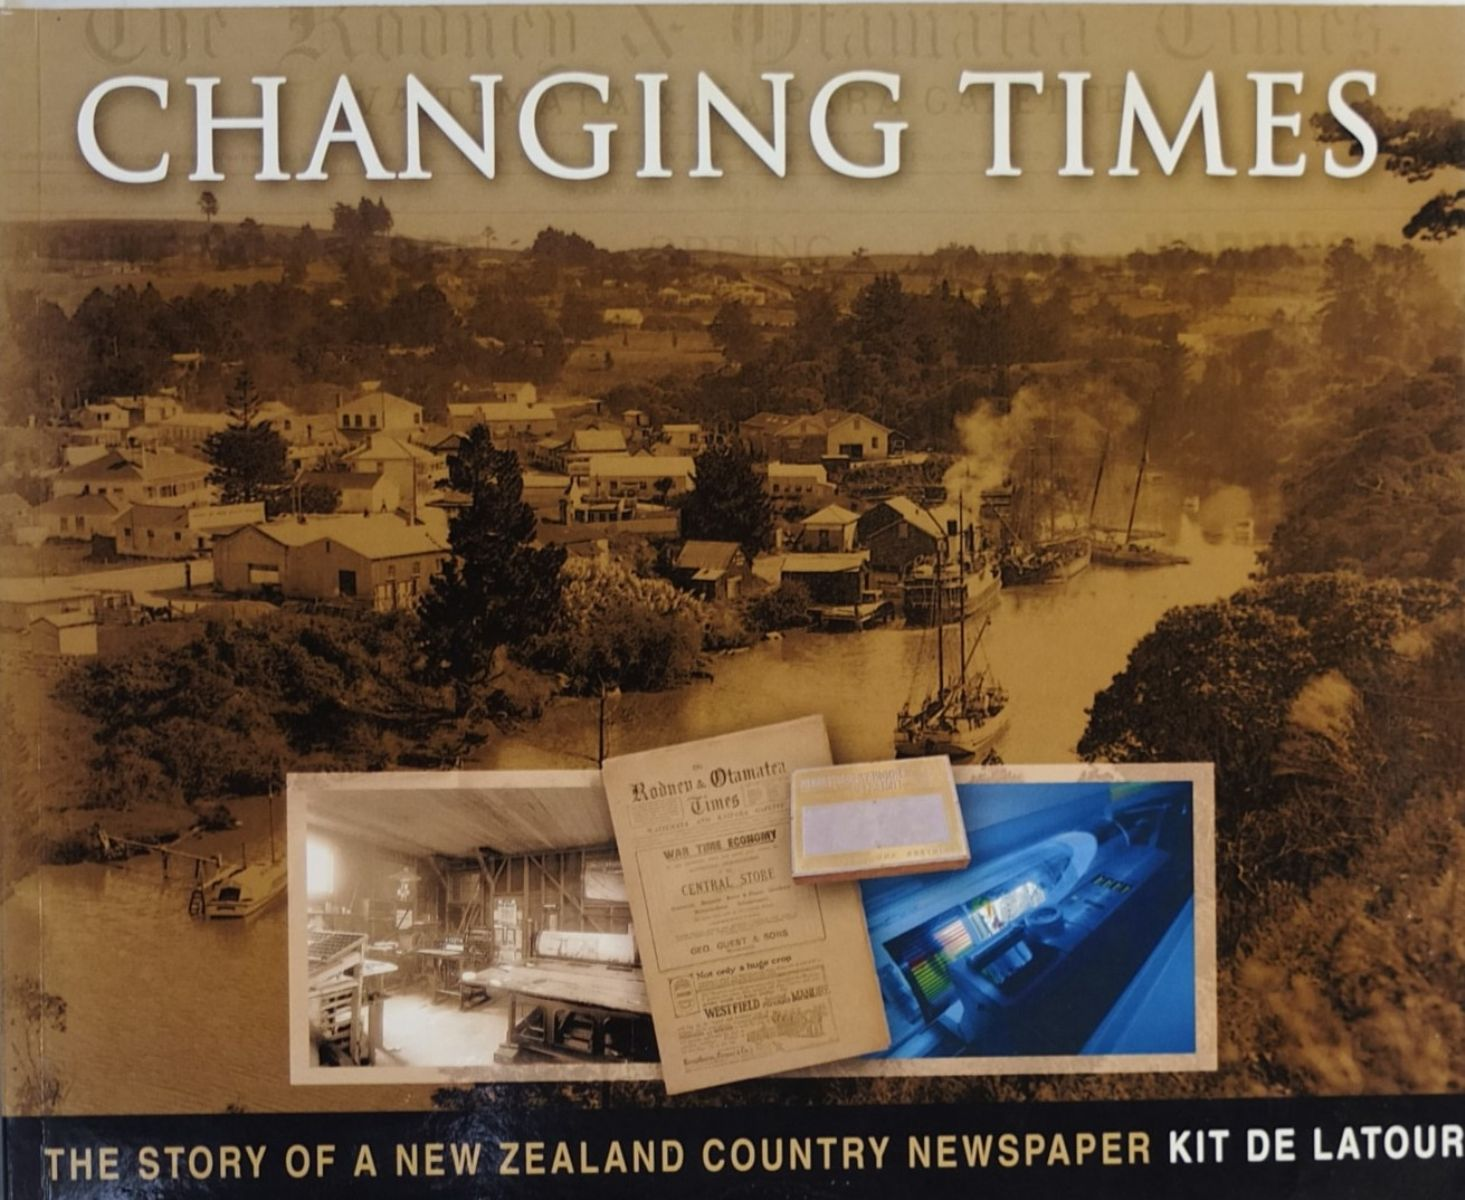 CHANGING TIMES: The Story of A New Zealand Country Newspaper